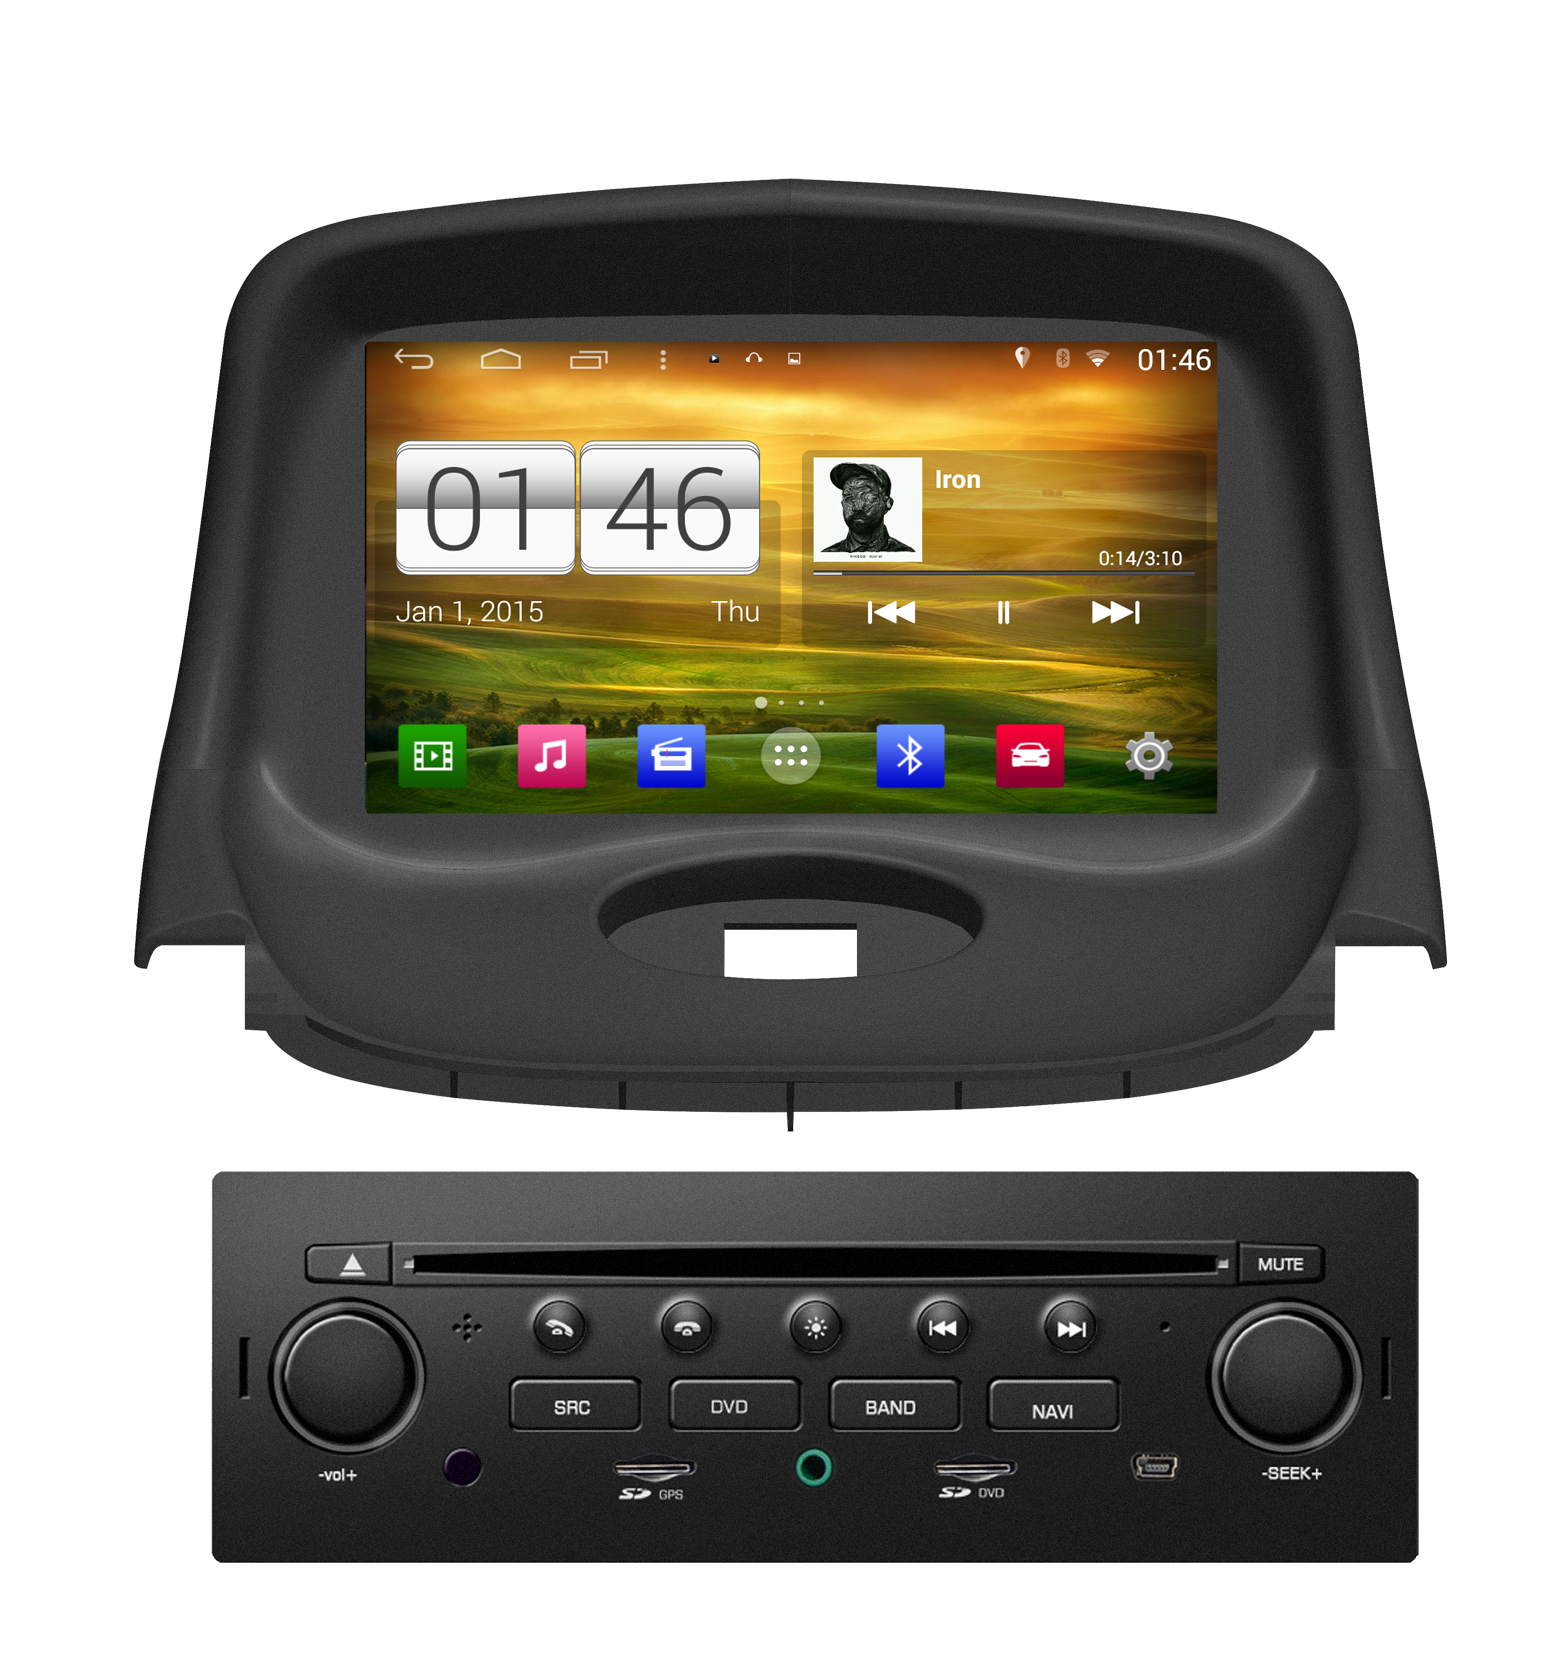 achetez votre autoradio android gps peugeot 206 cran tactile dvd wifi hightech. Black Bedroom Furniture Sets. Home Design Ideas